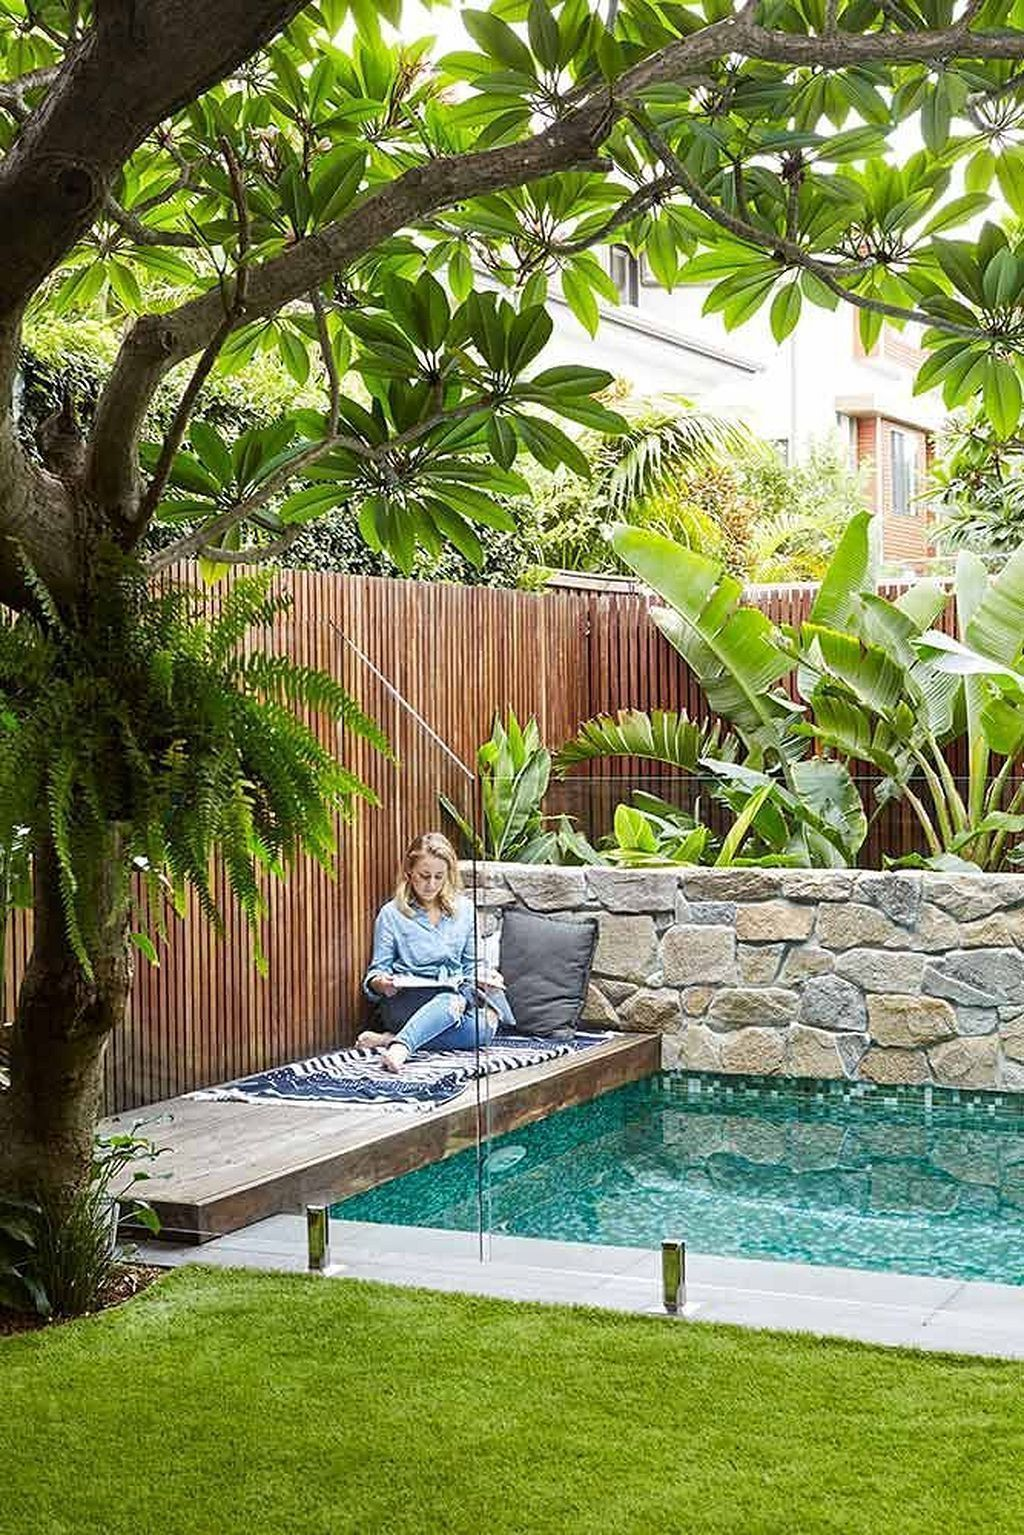 Nice 53 Minimalist Small Pool Design With Beautiful Garden Inside Small Backyard Design Small Pool Design Backyard Pool Landscaping